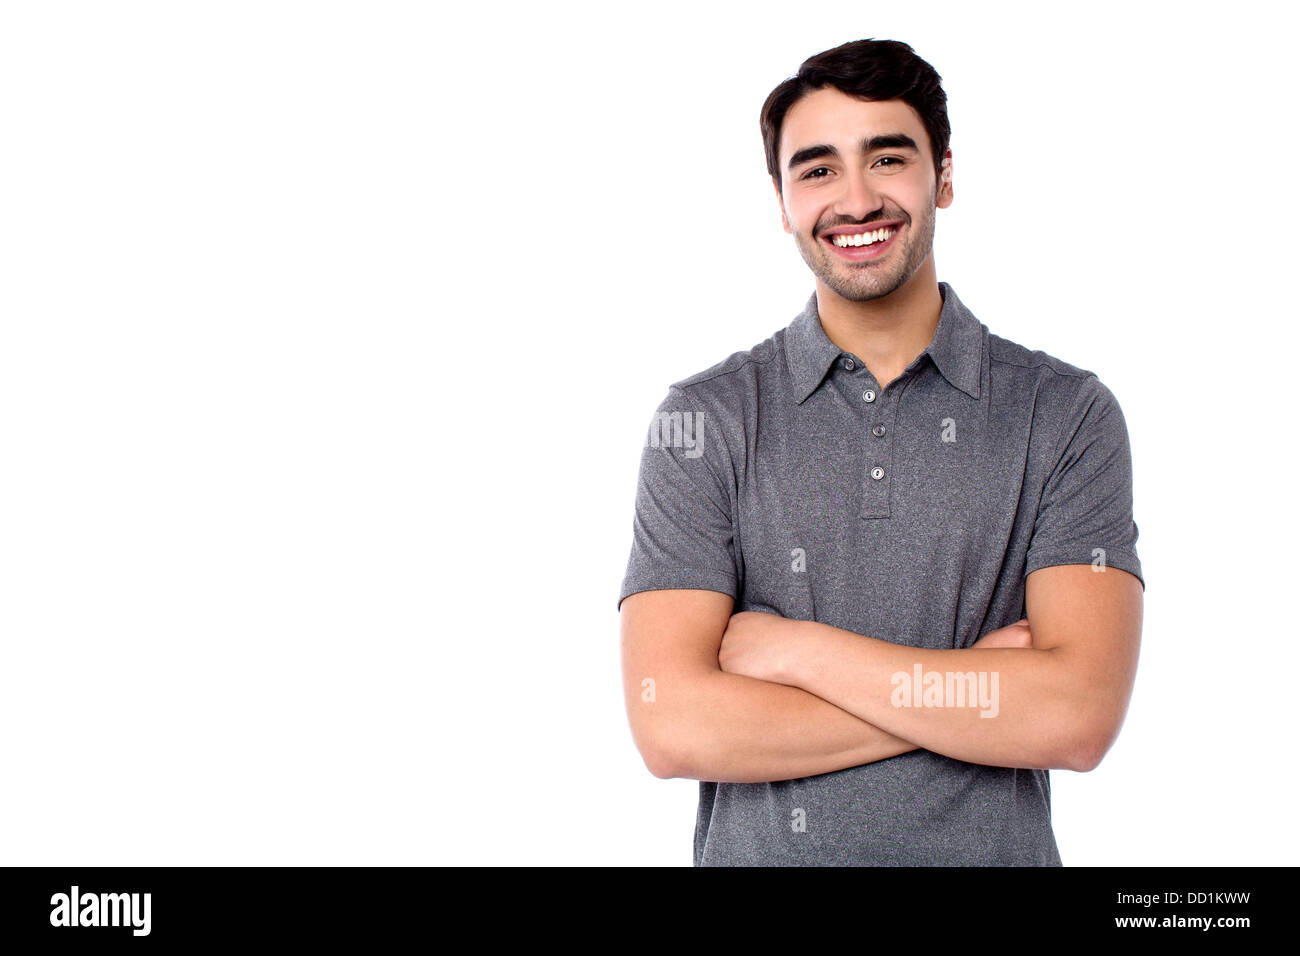 Half length portrait of smiling casual guy. - Stock Image